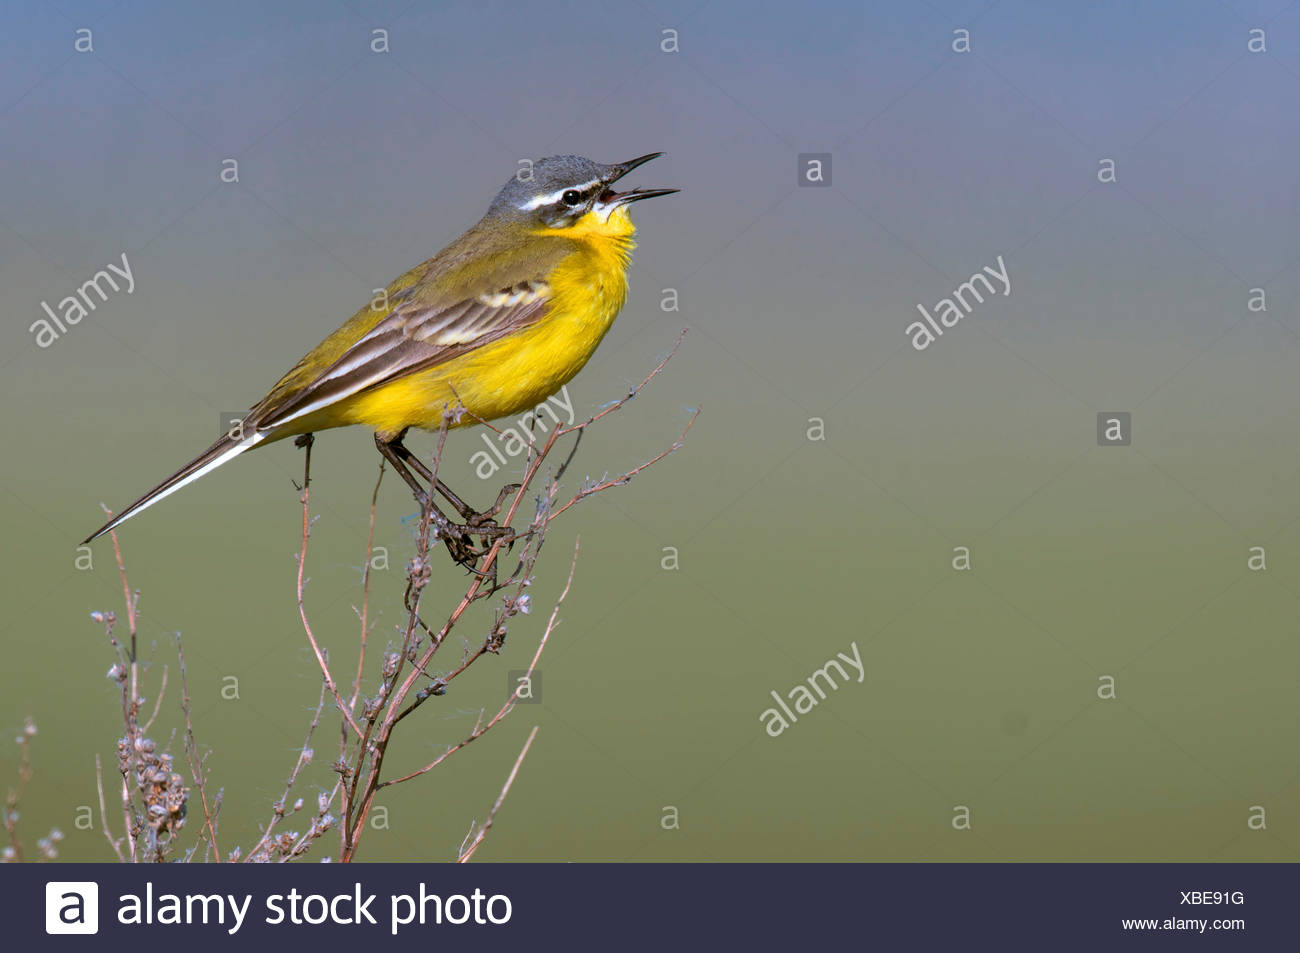 Yellow wagtail (Motacilla flava), sitting on a twing singing, Austria, Burgenland, Neusiedler See National Park - Stock Image